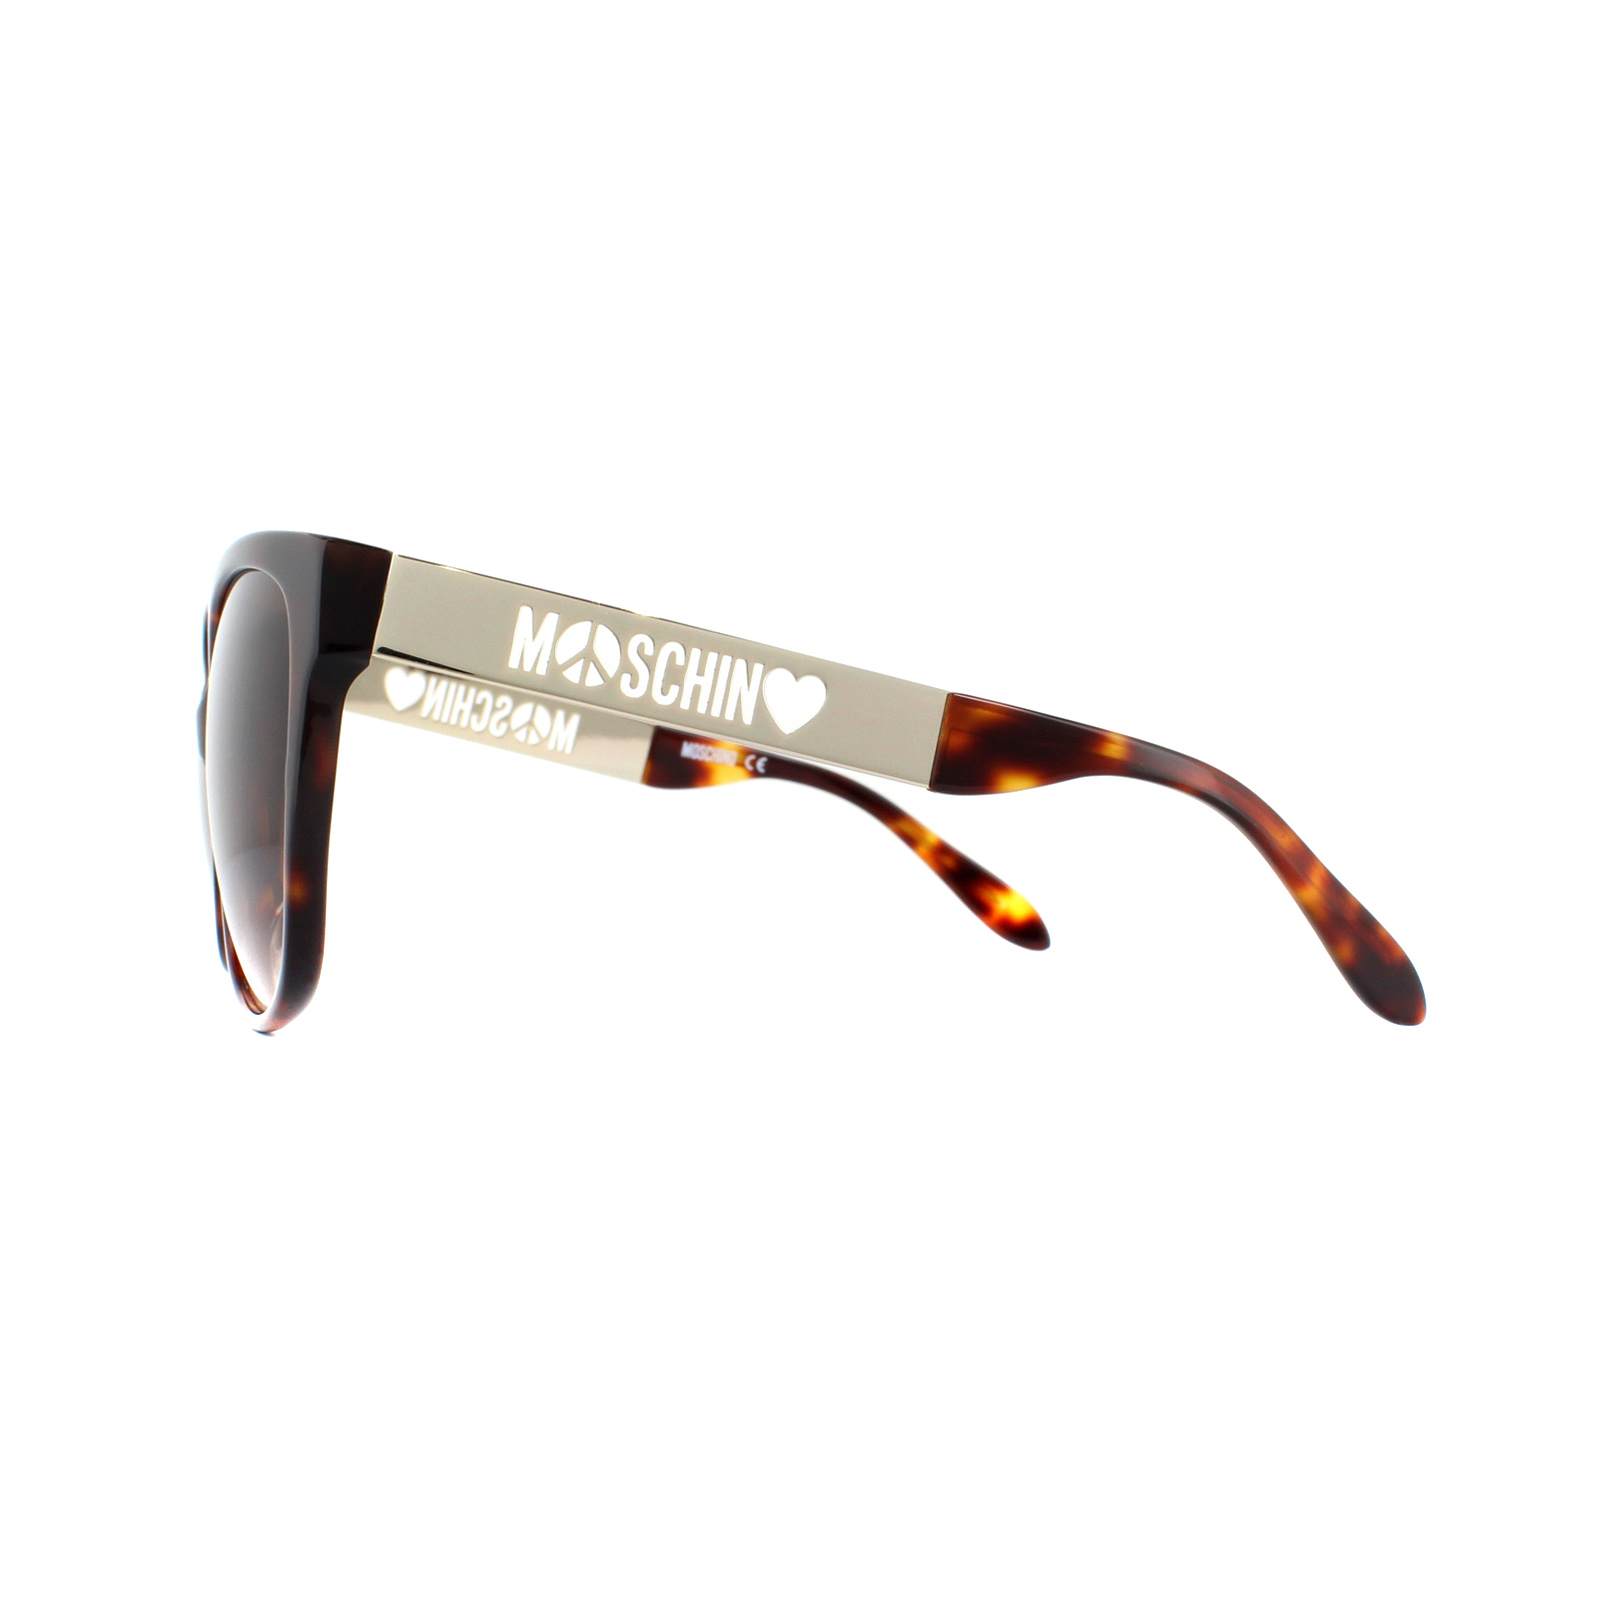 Details about Moschino Sunglasses MO802 02 Tortoiseshell Gold Brown Gradient